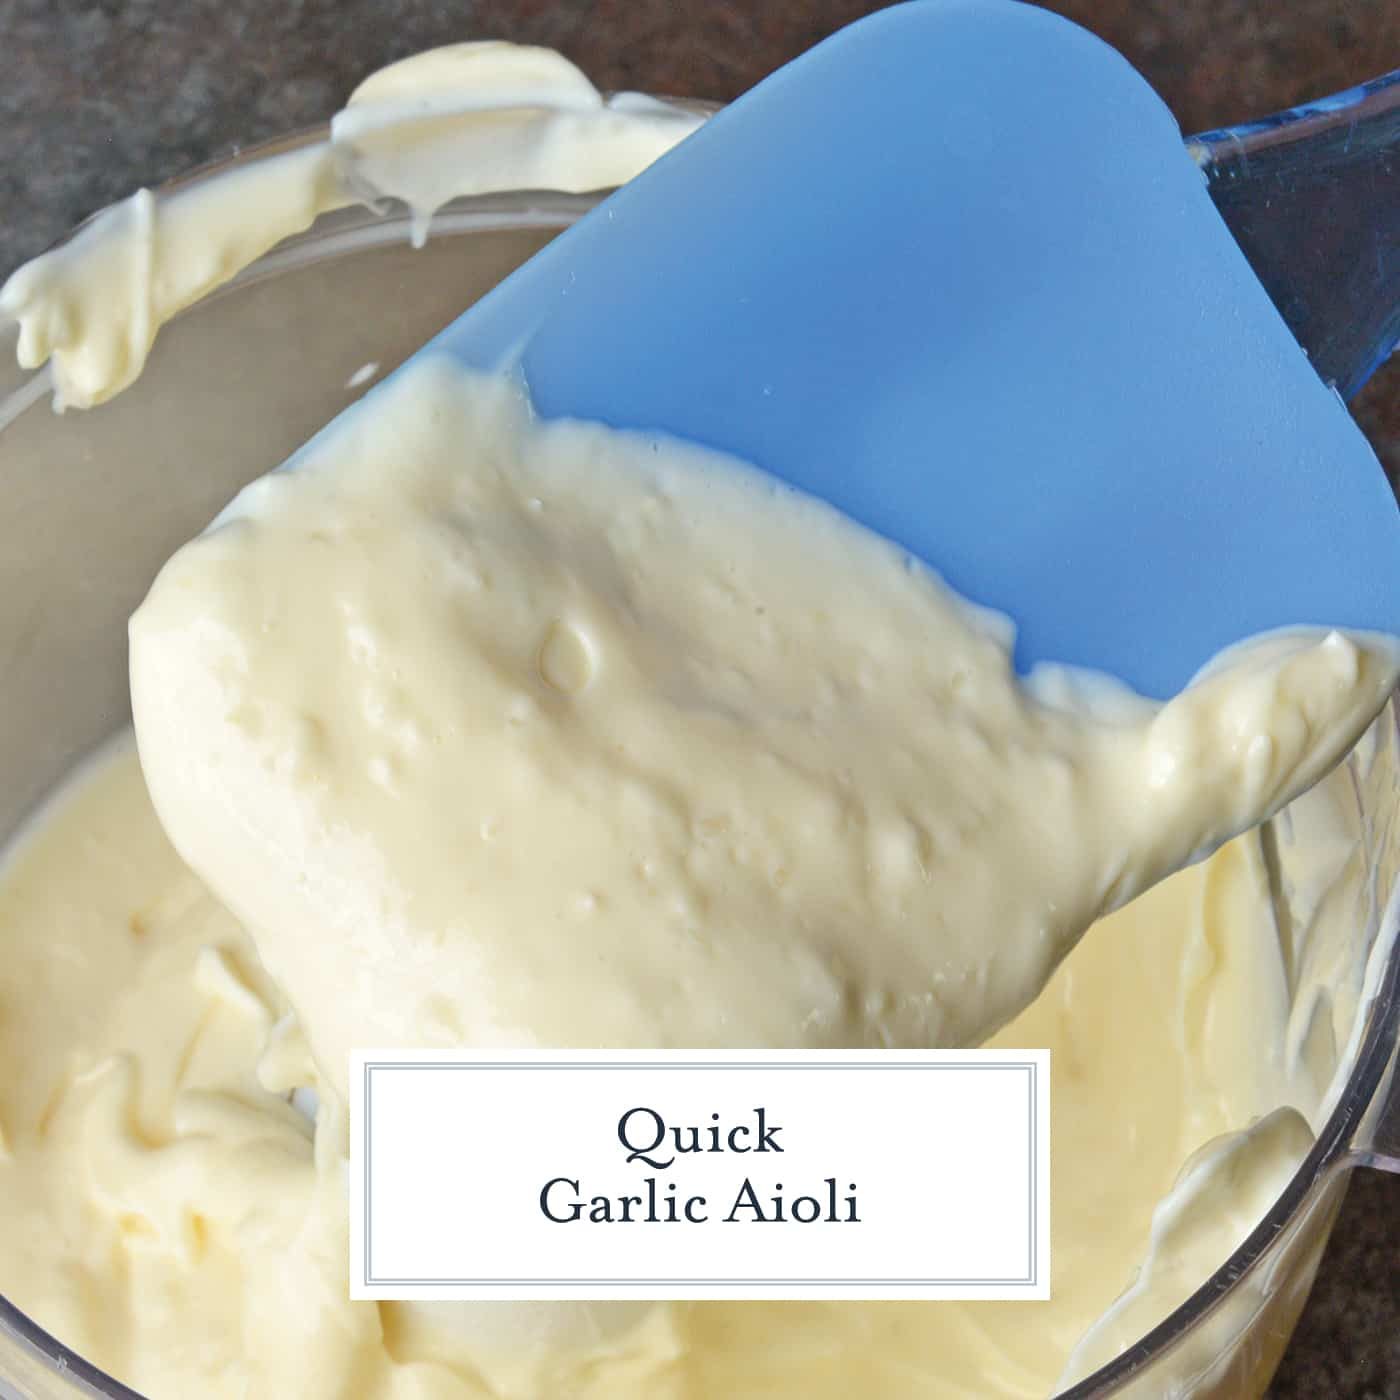 Quick Garlic Aioli is one of the easiest ways to punch up any dish or meal. Make this simple sauce in less than 5 minutes! #aiolirecipes #garlicaioli www.savoryexperiments.com